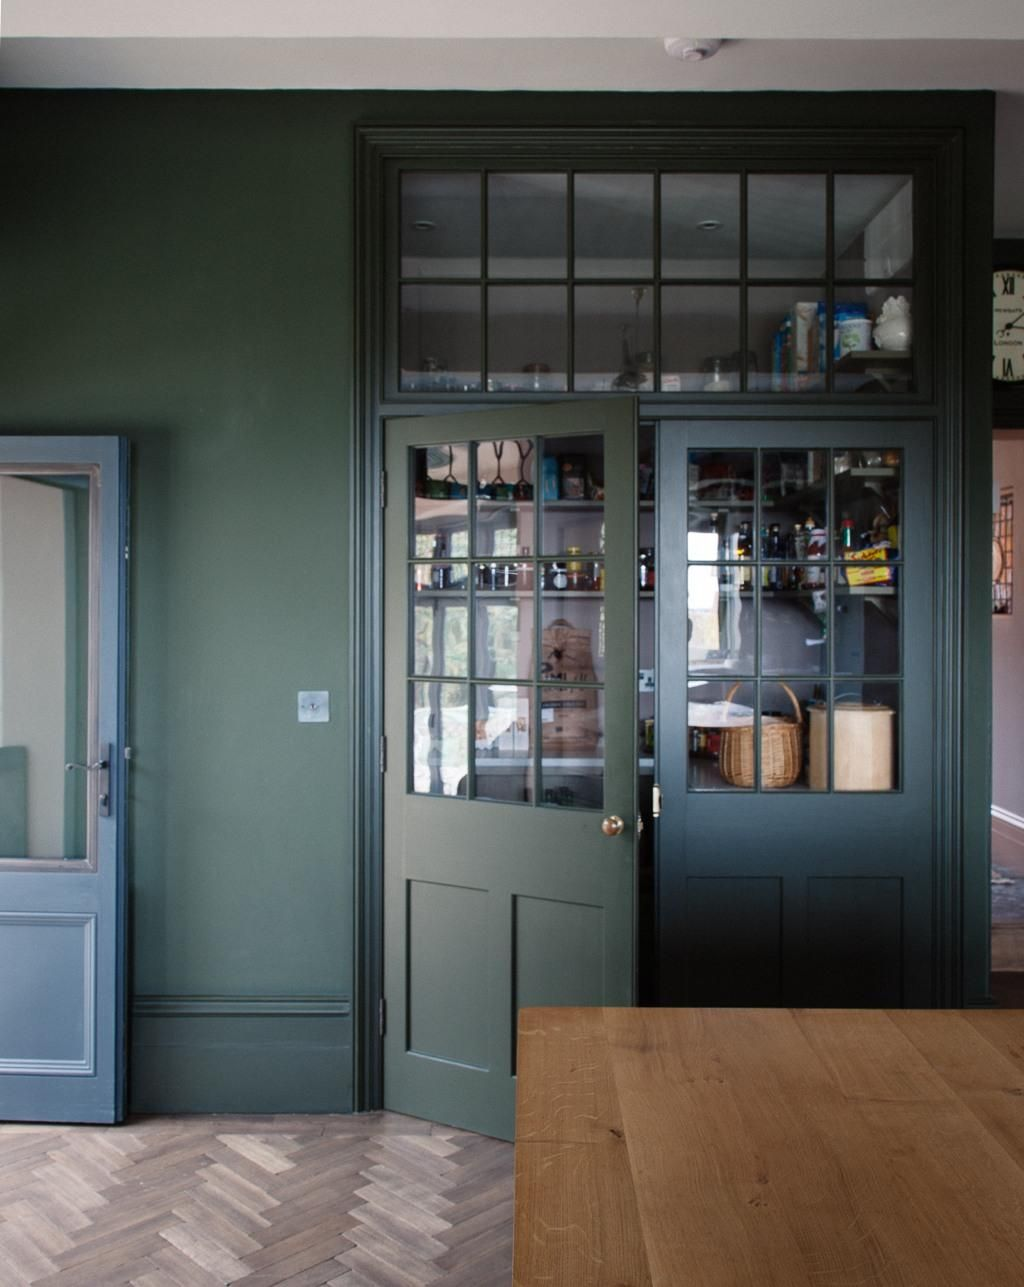 Kitchen of the Week: A Historic Kitchen in Shropshire, Recast in Monochrome Green - Remodelista #plainenglishkitchen